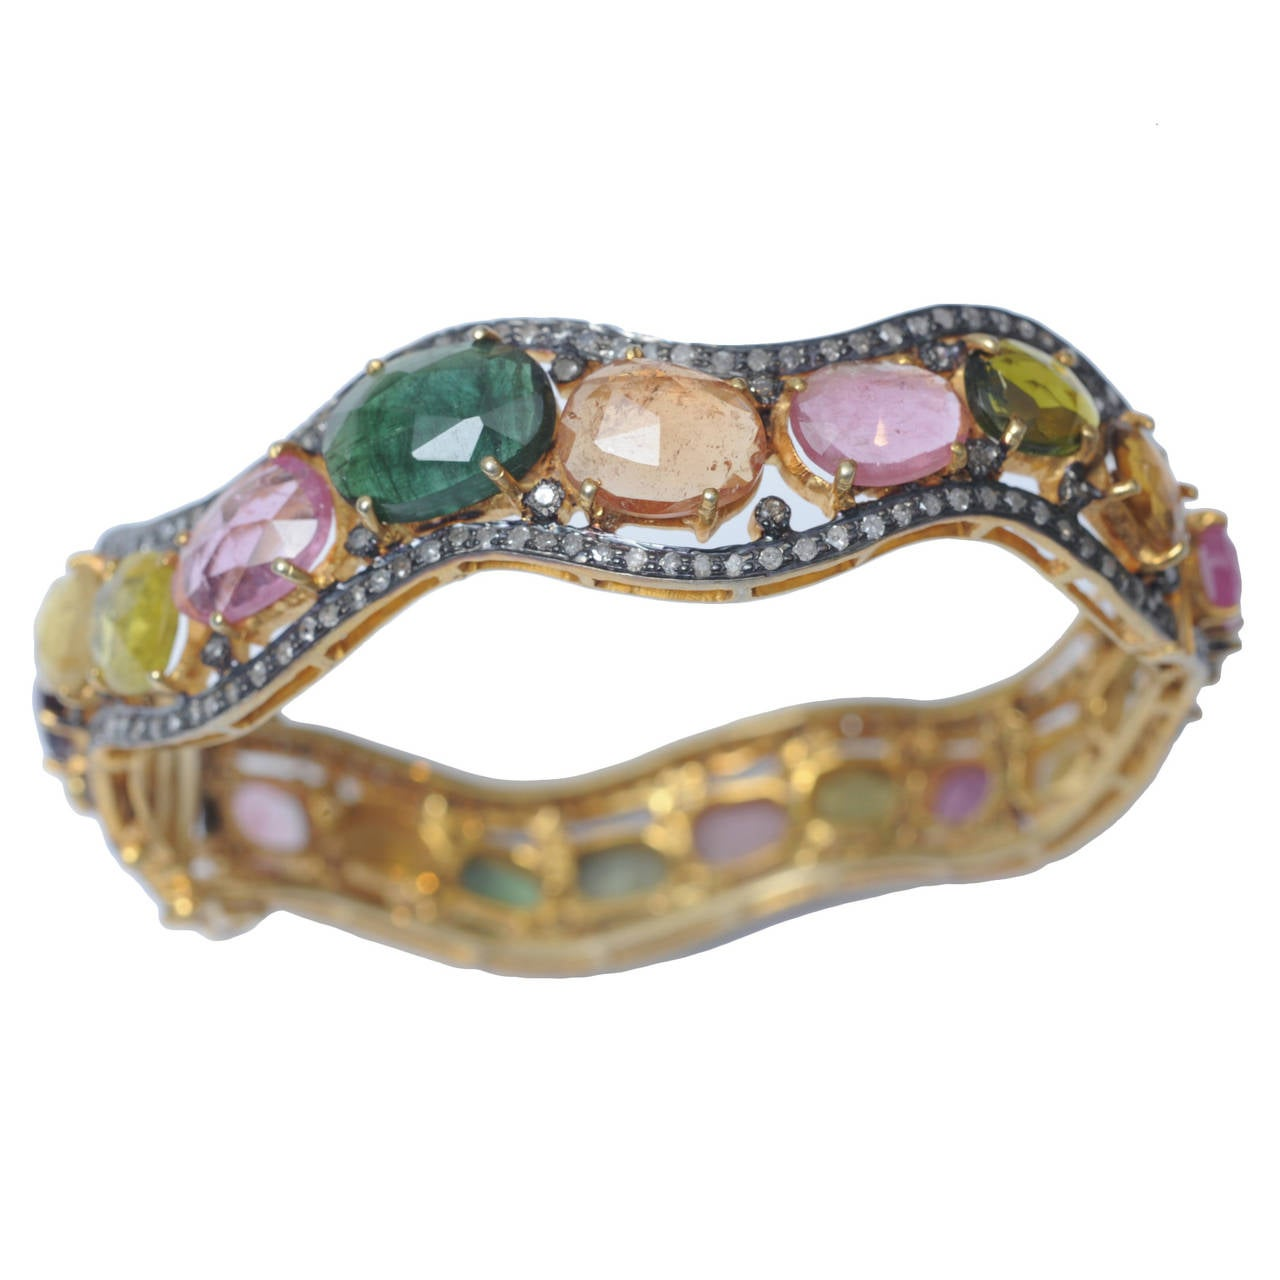 Oval Bracelet of Faceted Rainbow Tourmaline and Diamonds